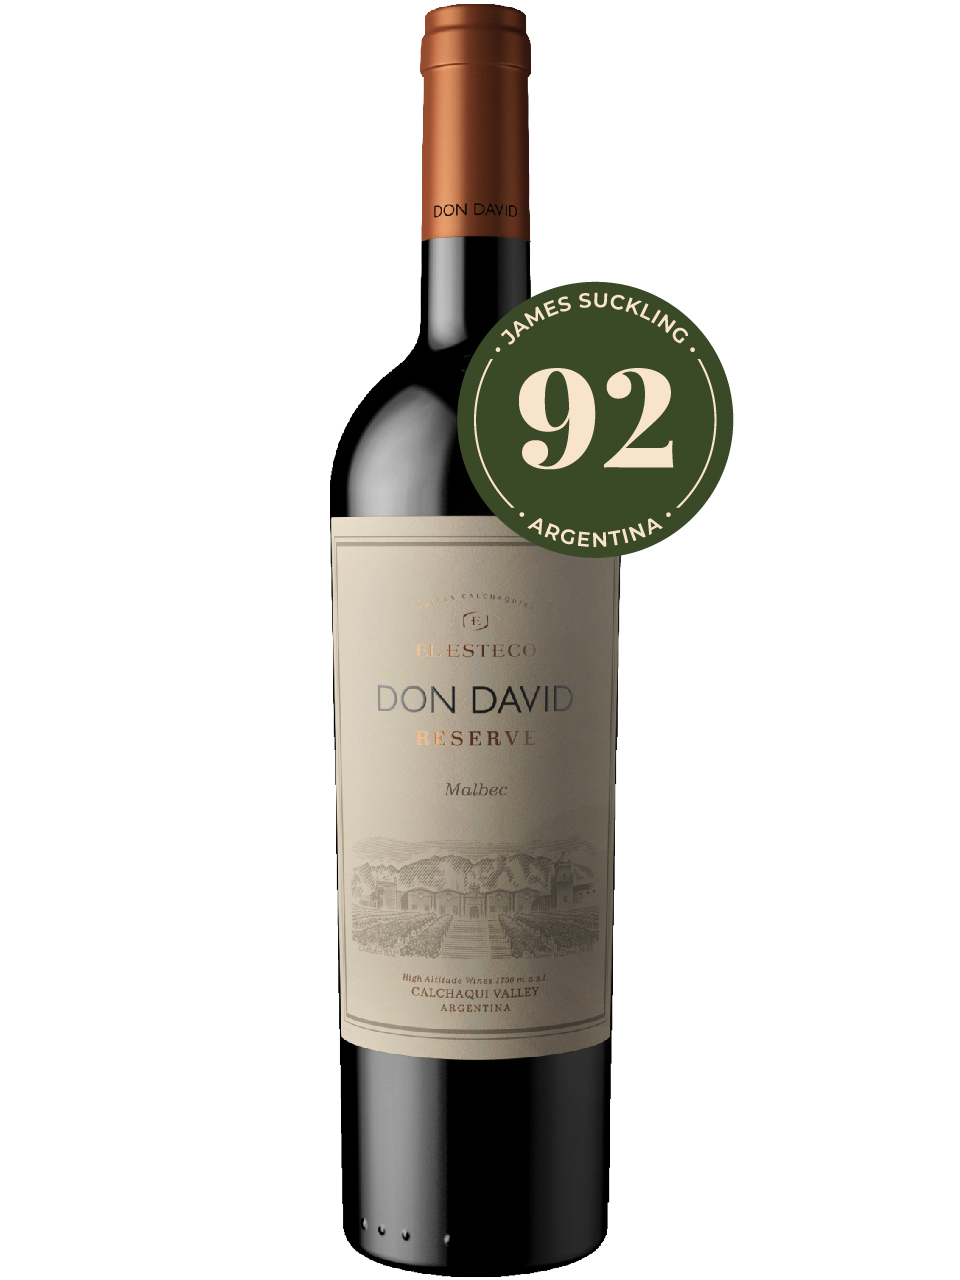 Don David Malbec Reserve